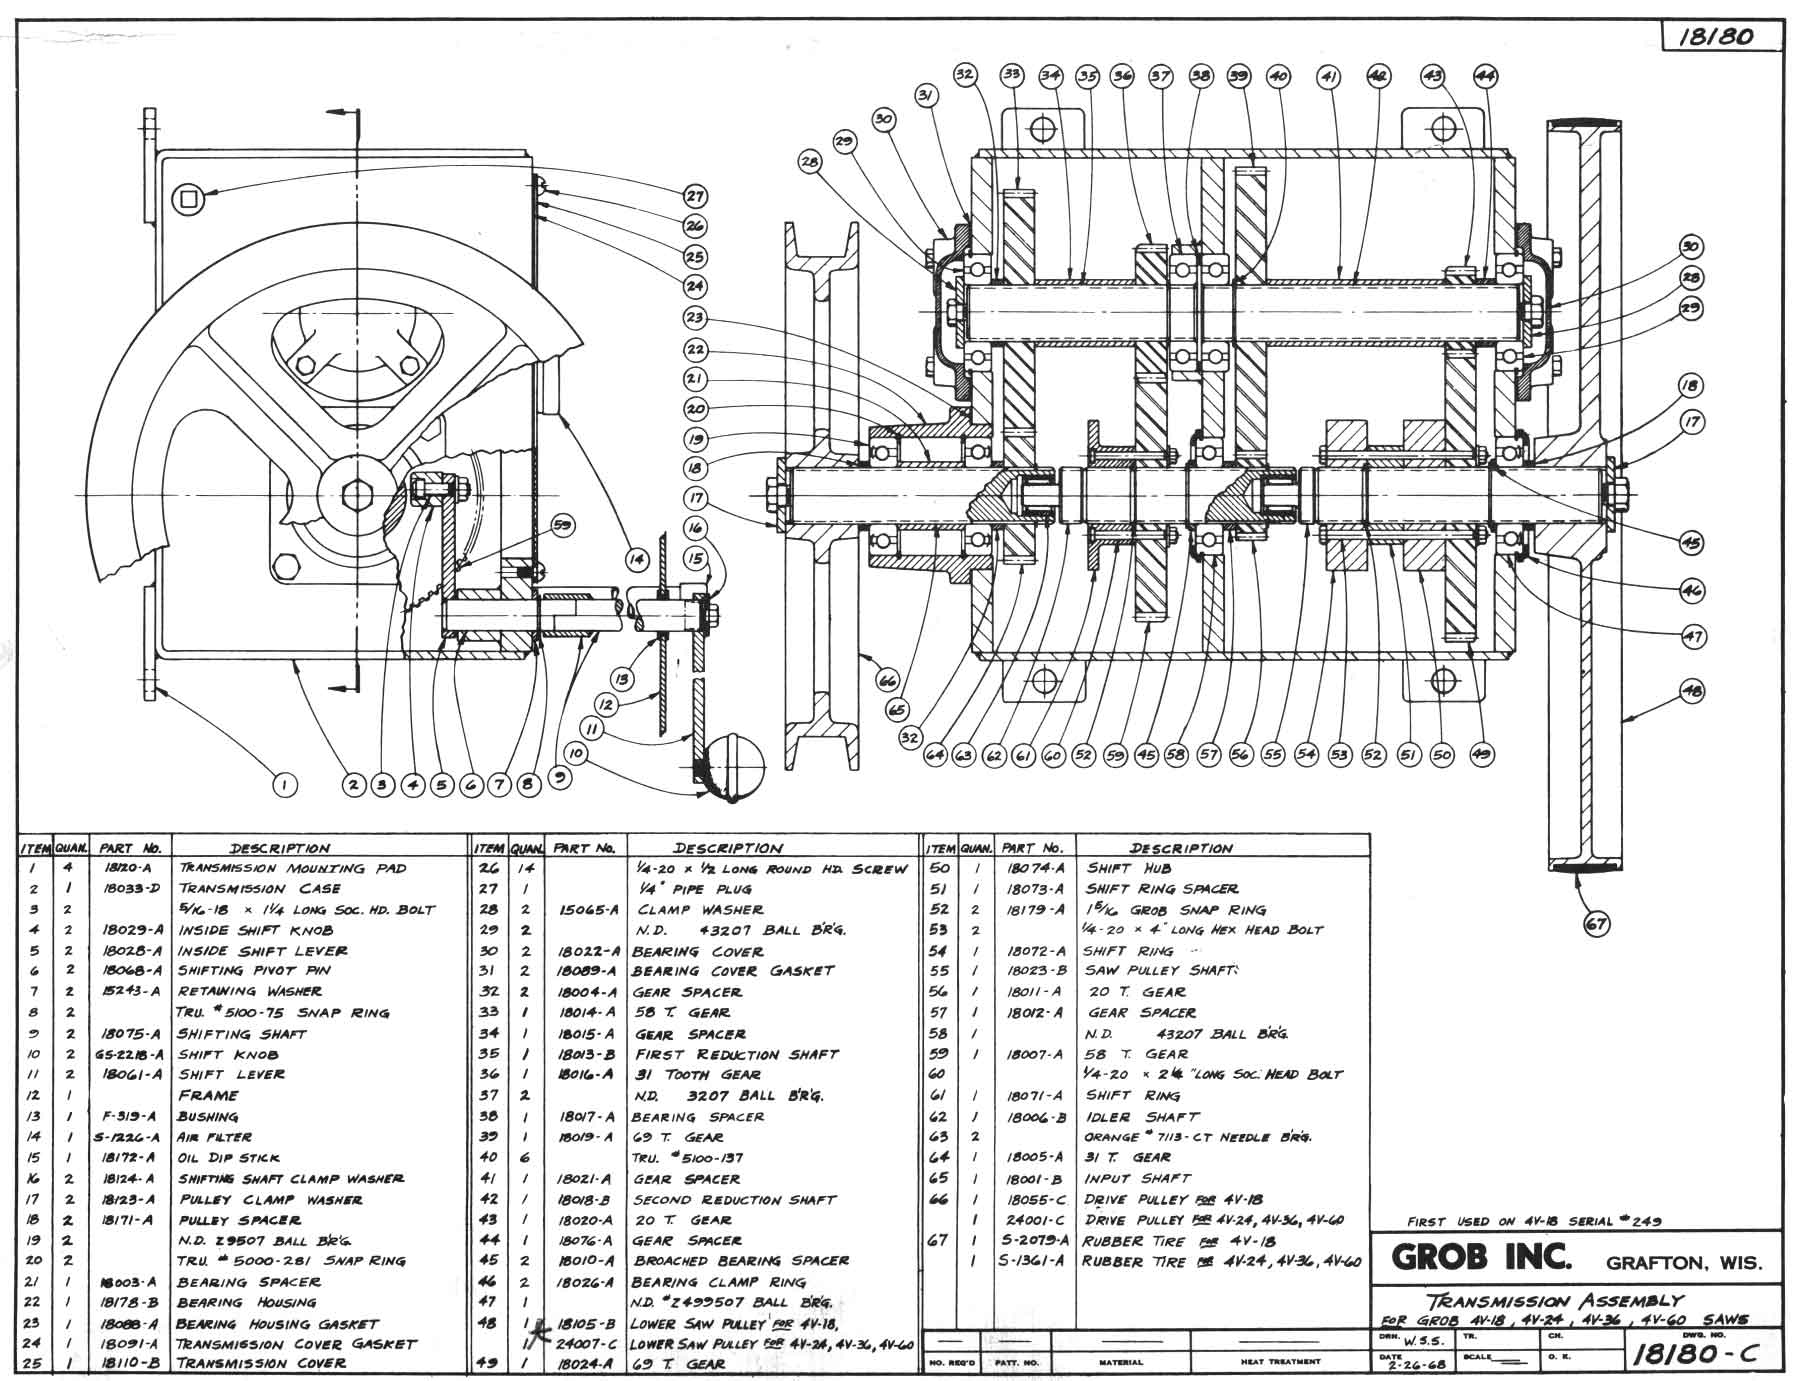 Manual Machine And Accessories Parts Lists